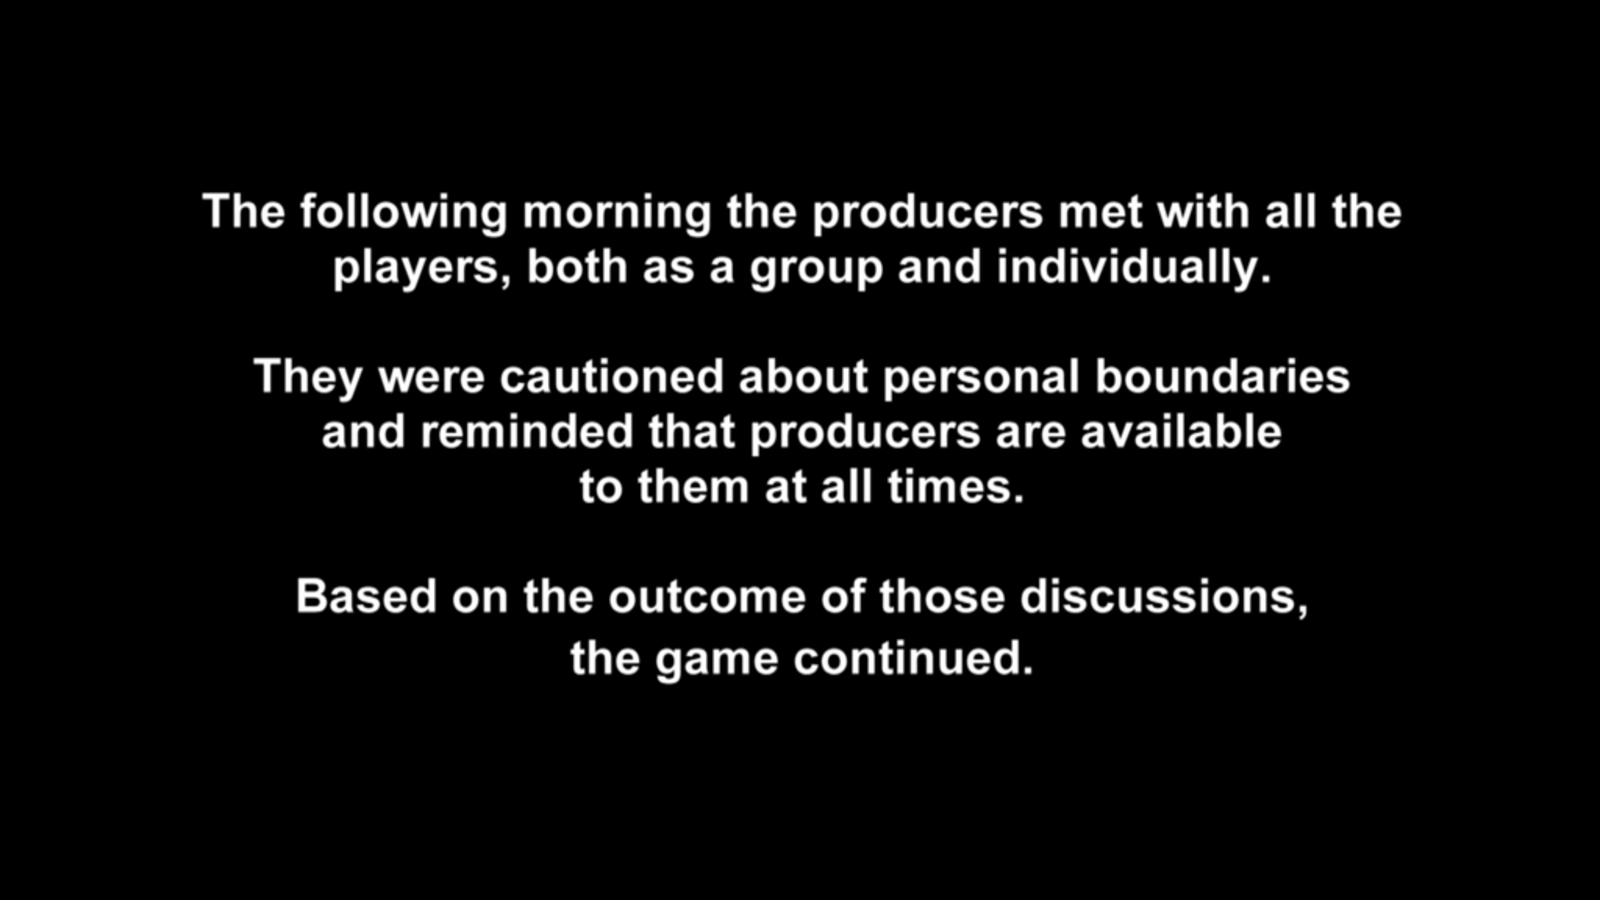 The series of chyrons which aired before the commercial break, detailing the (unseen) producer intervention.